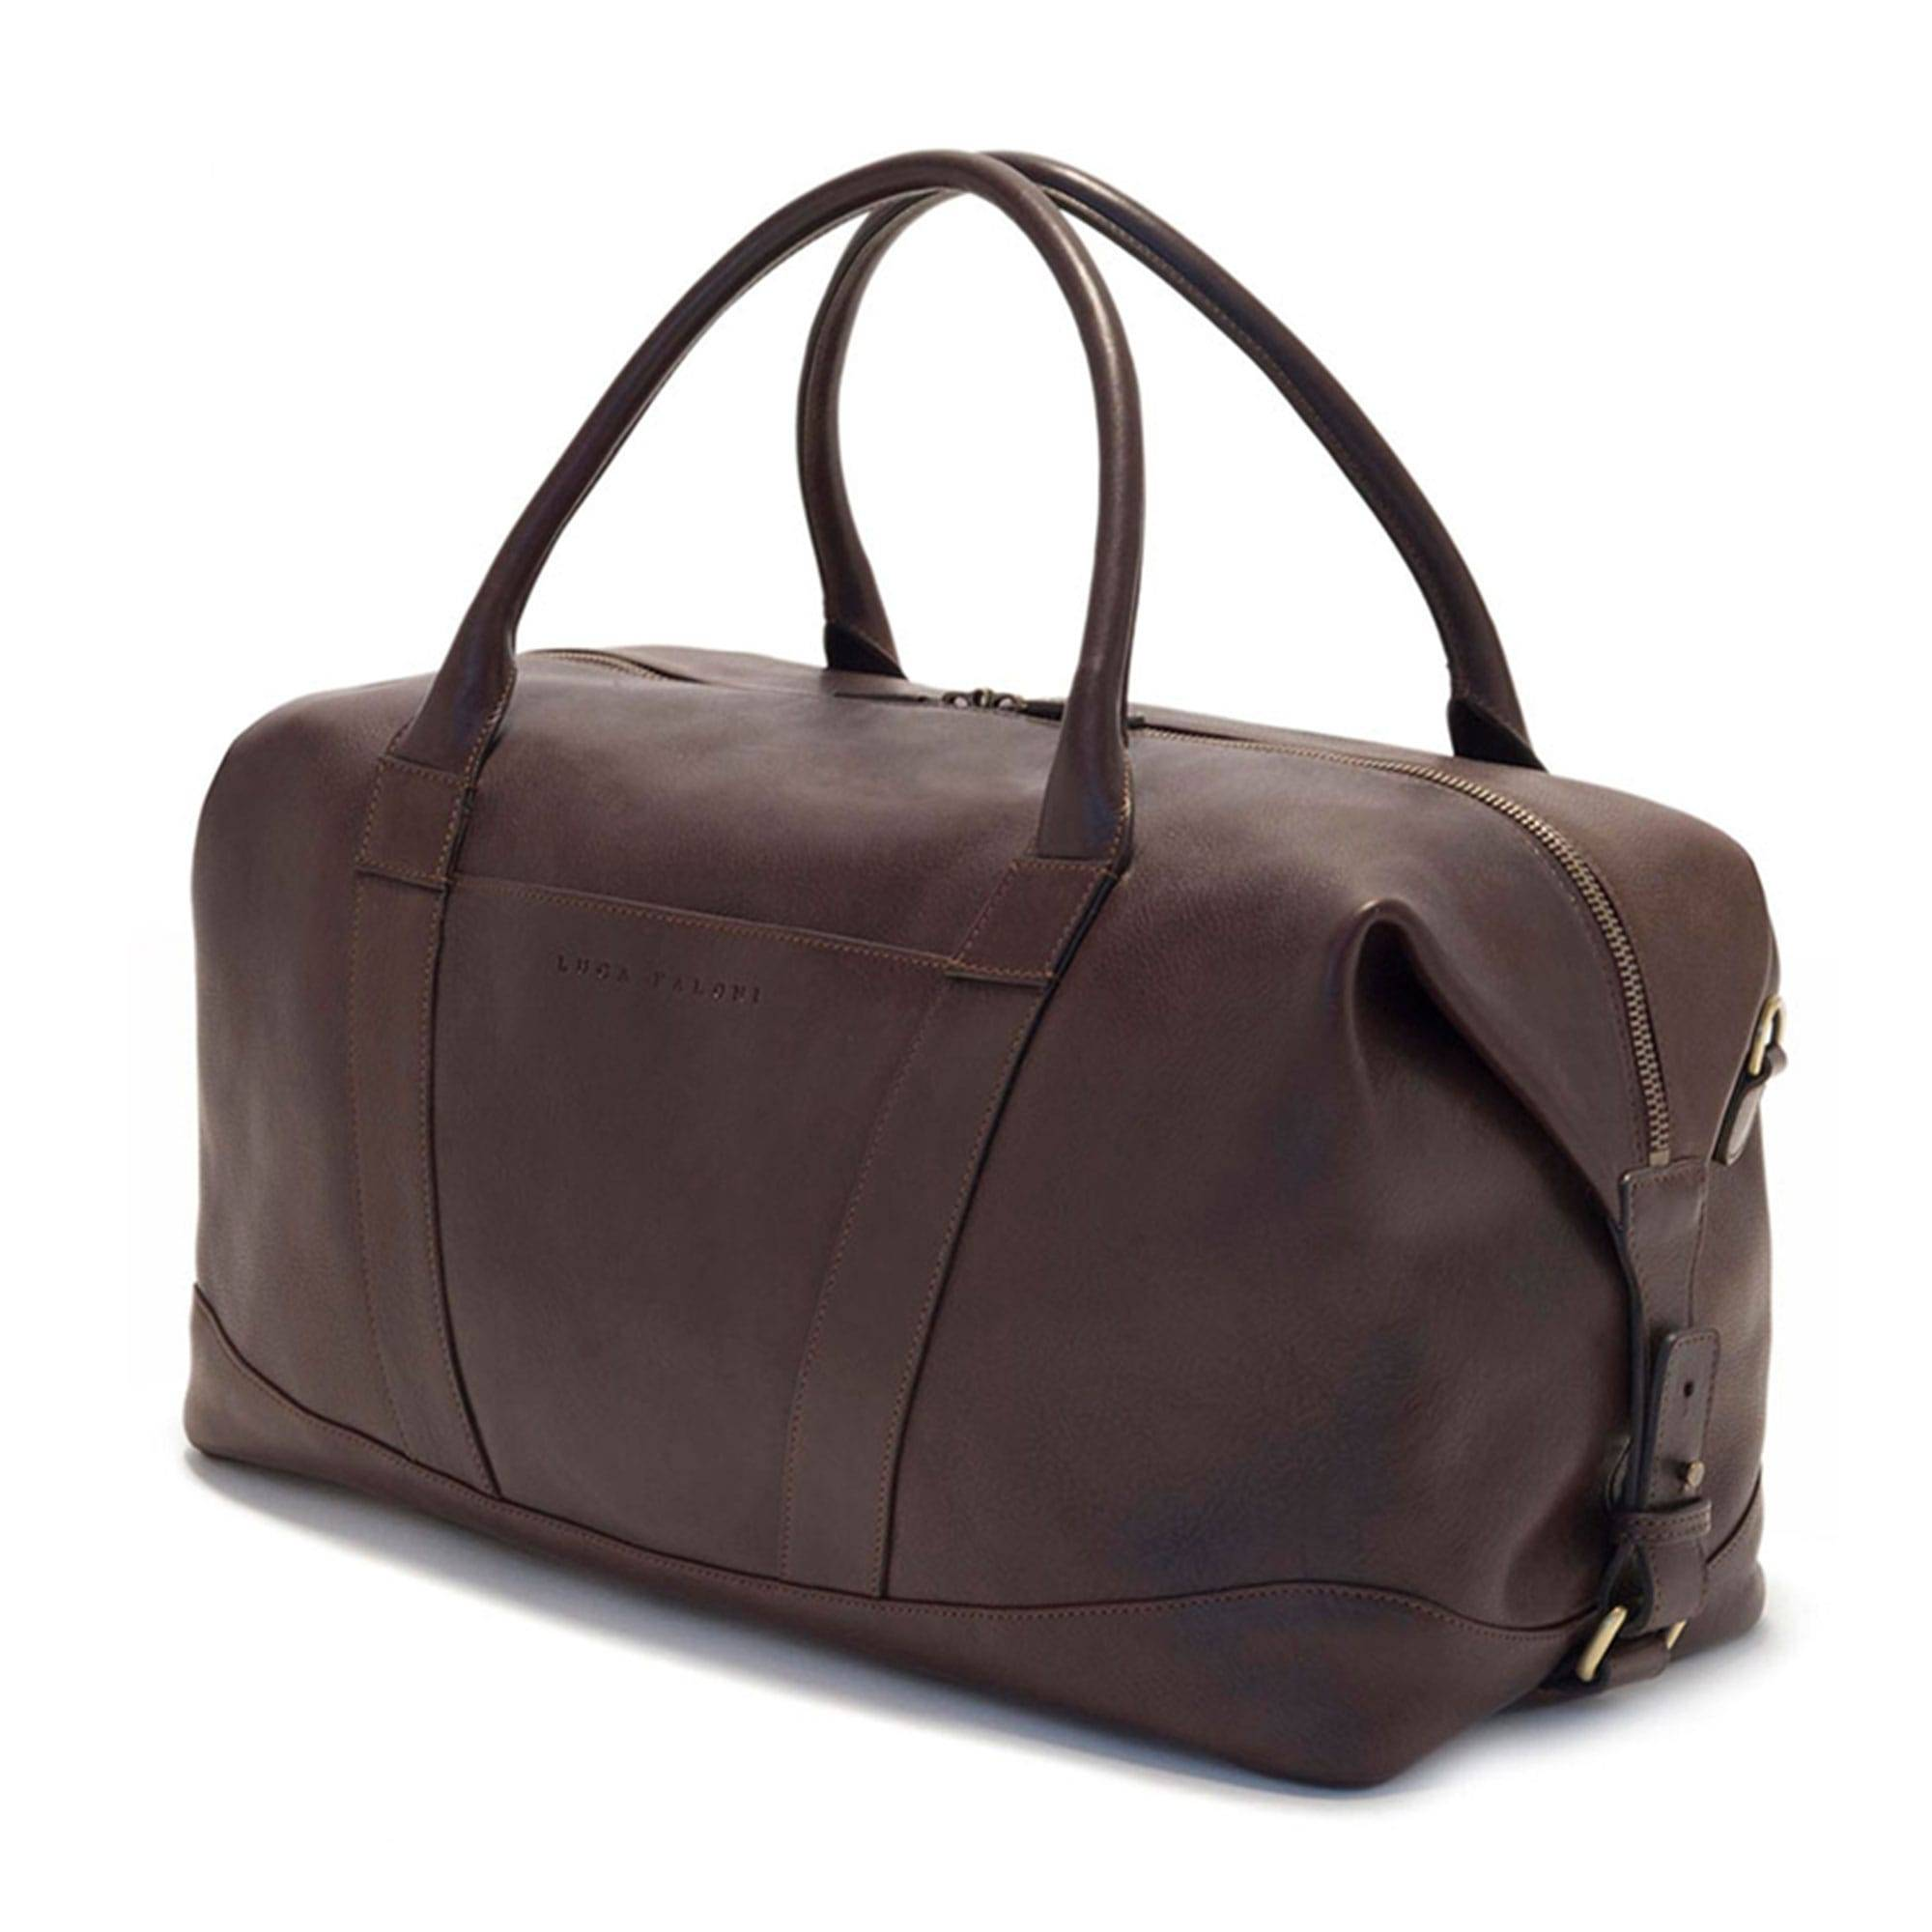 Luca Faloni Chocolate Brown Weekender leather travel bag made in Italy